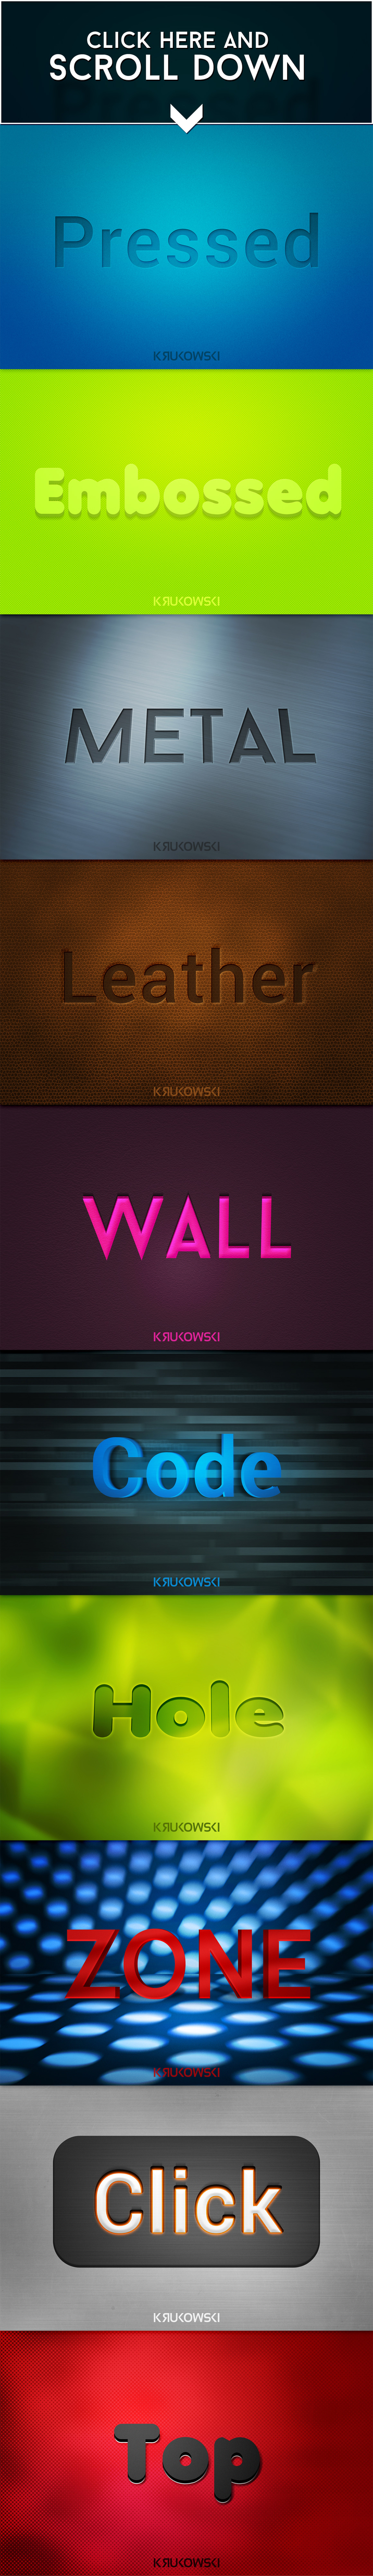 Creativemarket_Pressed_And_Embossed_Text_Effects_220060_cap02